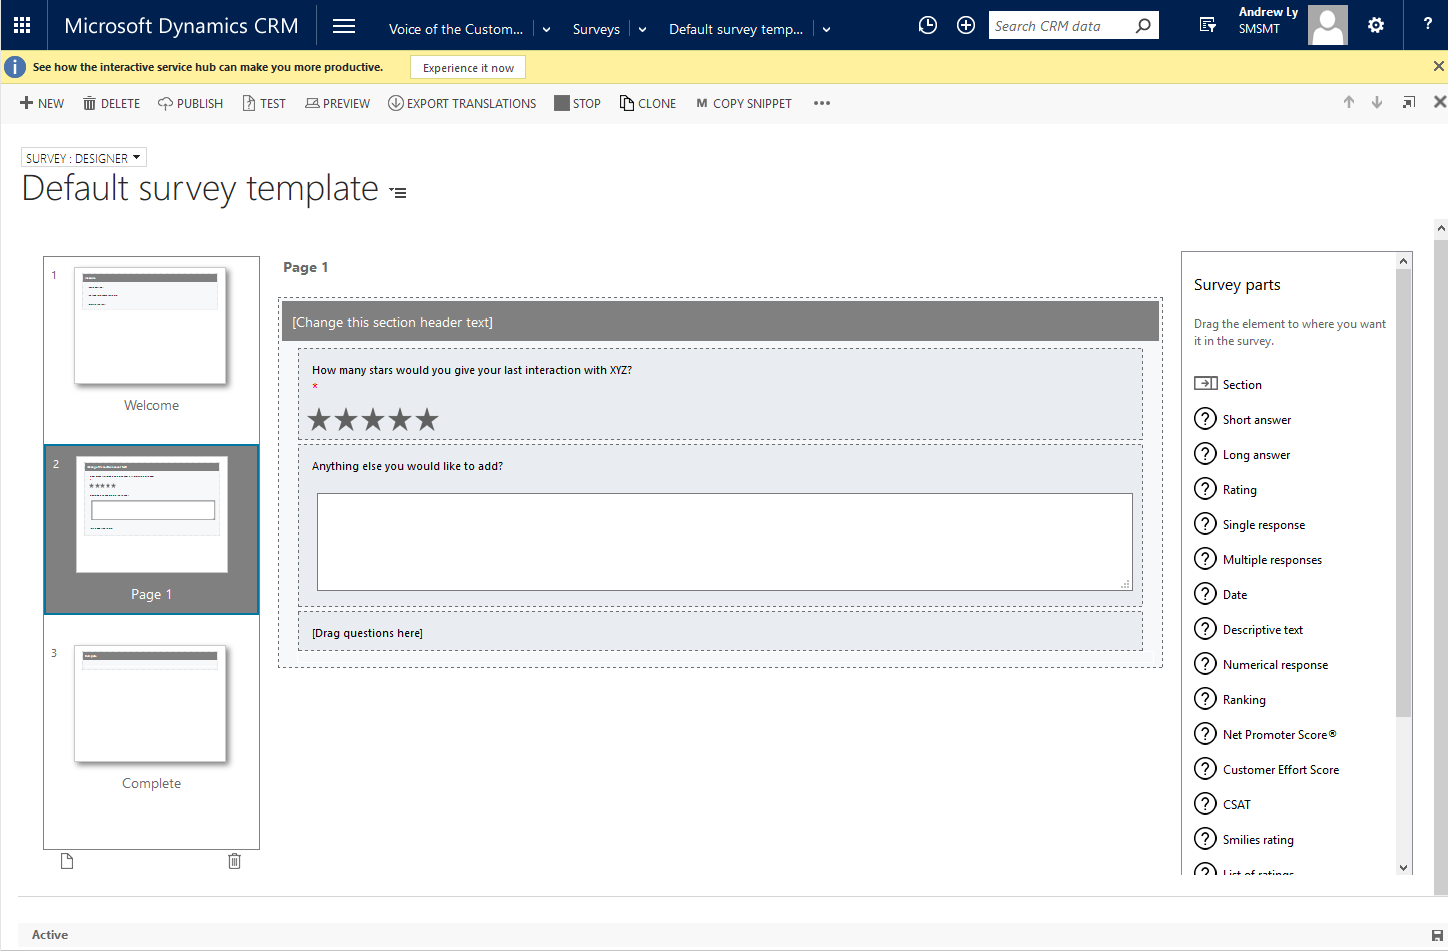 Creating New Voice Of The Customer Surveys In Crm 2016 365lyf